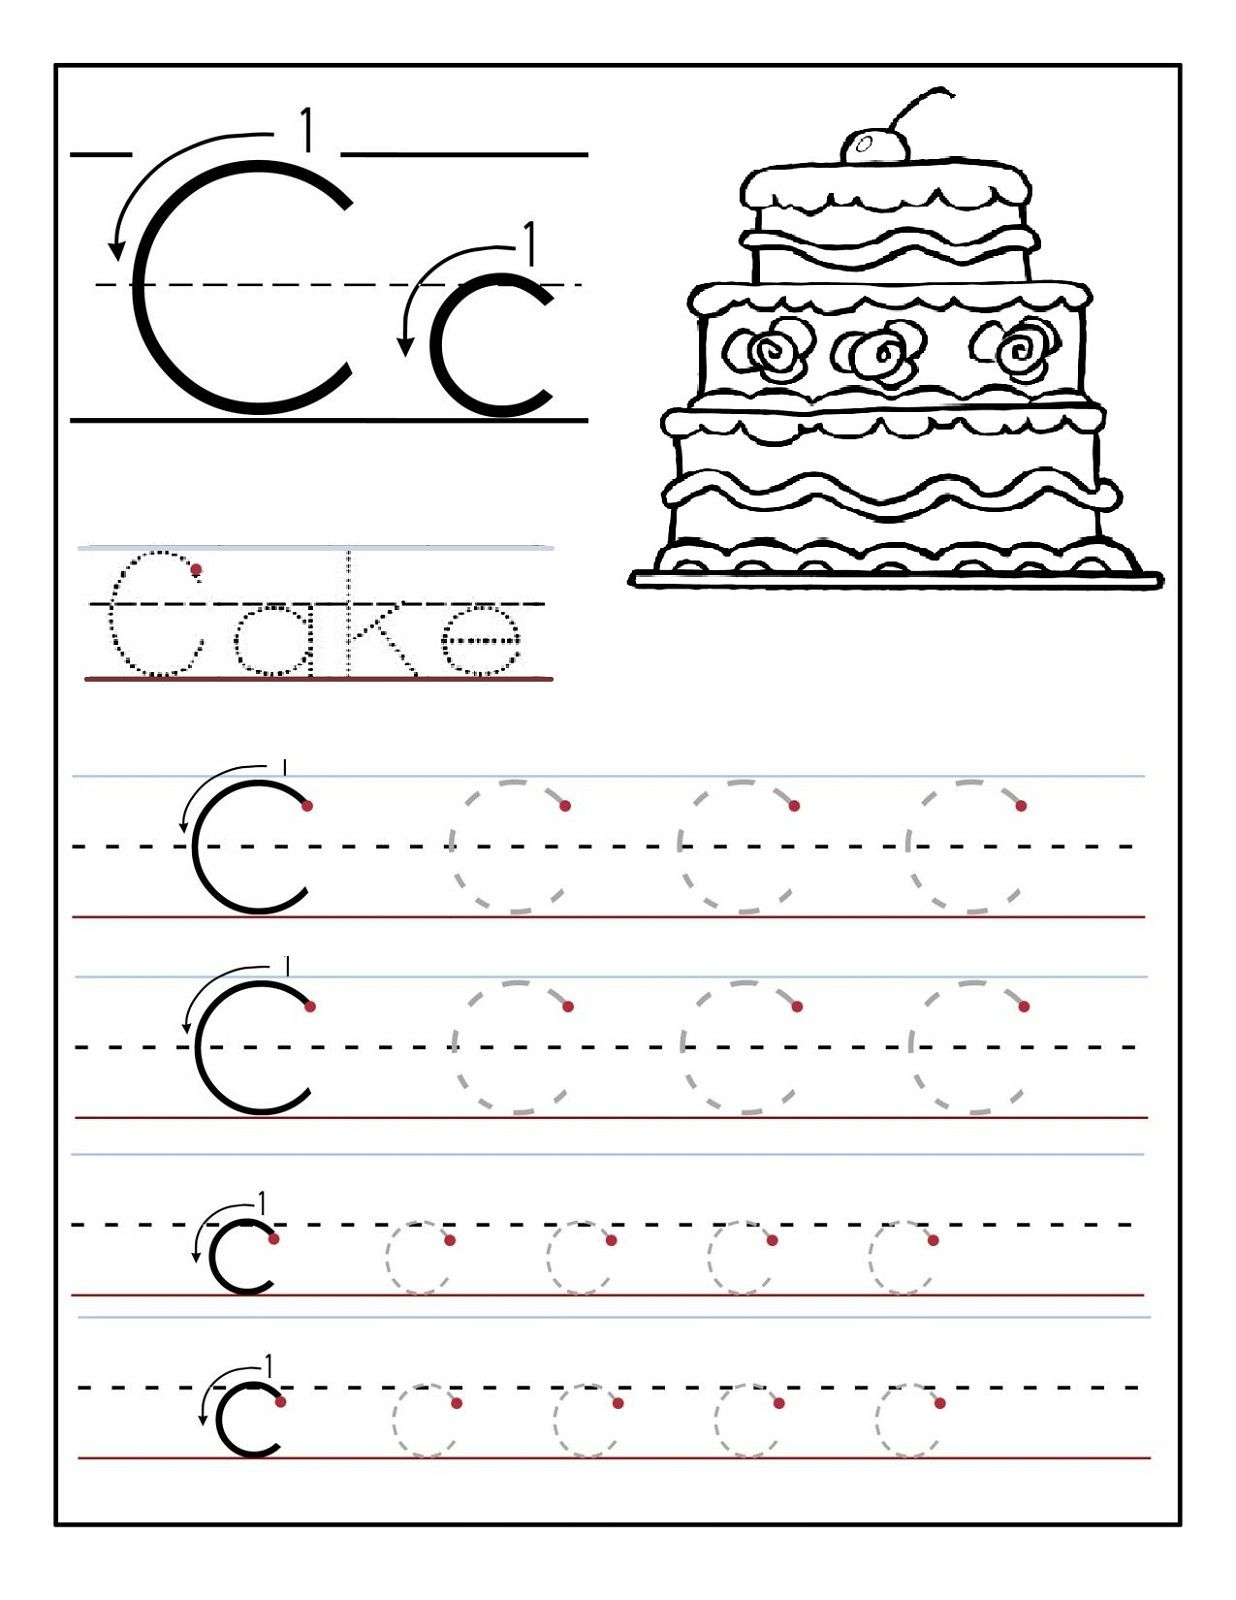 Trace The Letter C Worksheets | Alphabet Worksheets pertaining to Alphabet Worksheets Letter C